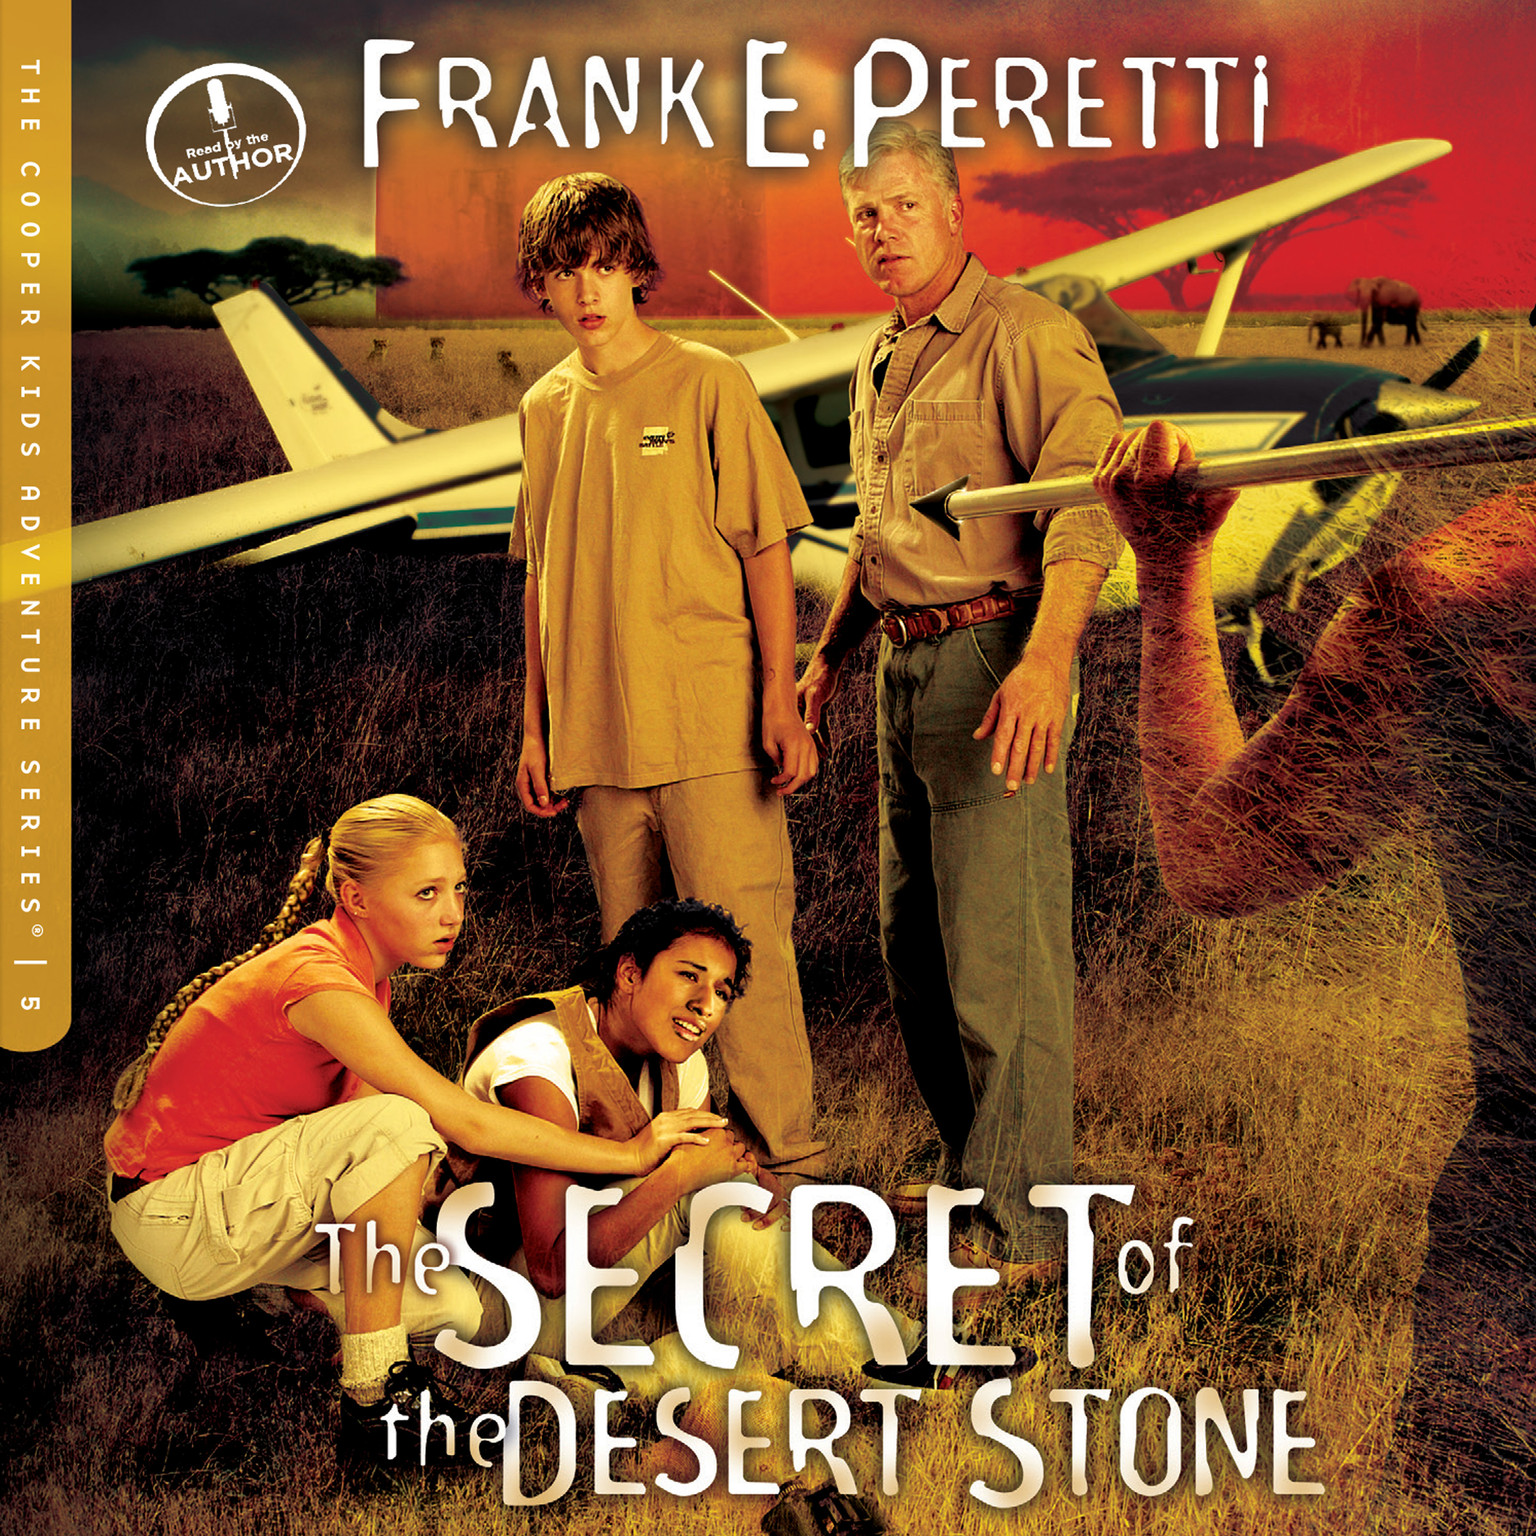 Printable The Secret of the Desert Stone Audiobook Cover Art